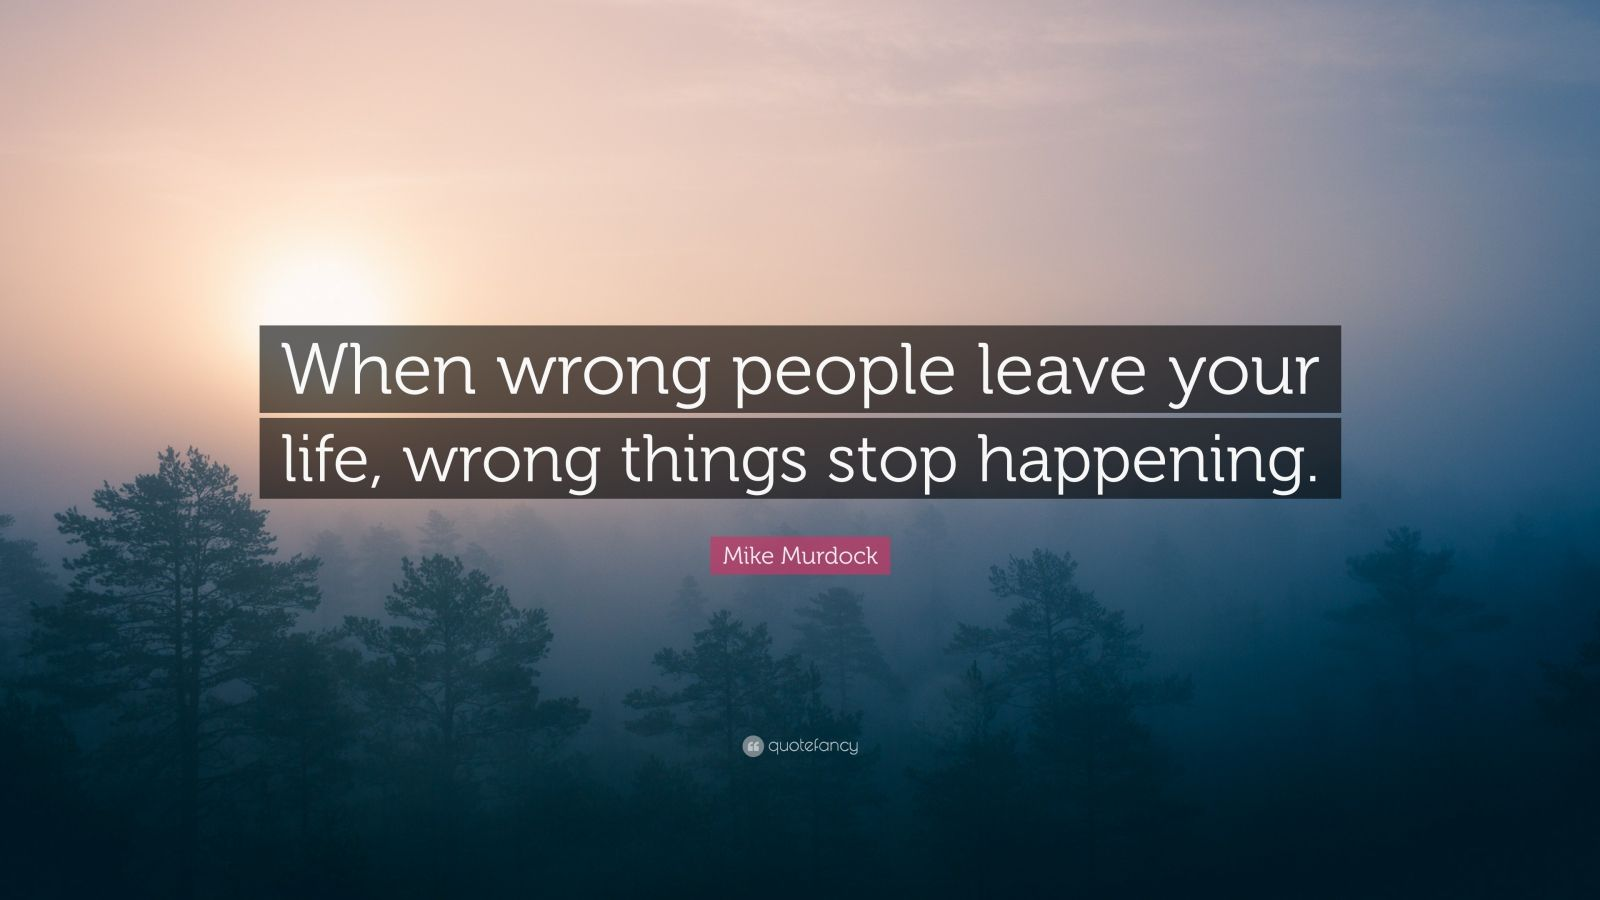 Quotes On People Leaving Your Life Quotes About People Leaving Your